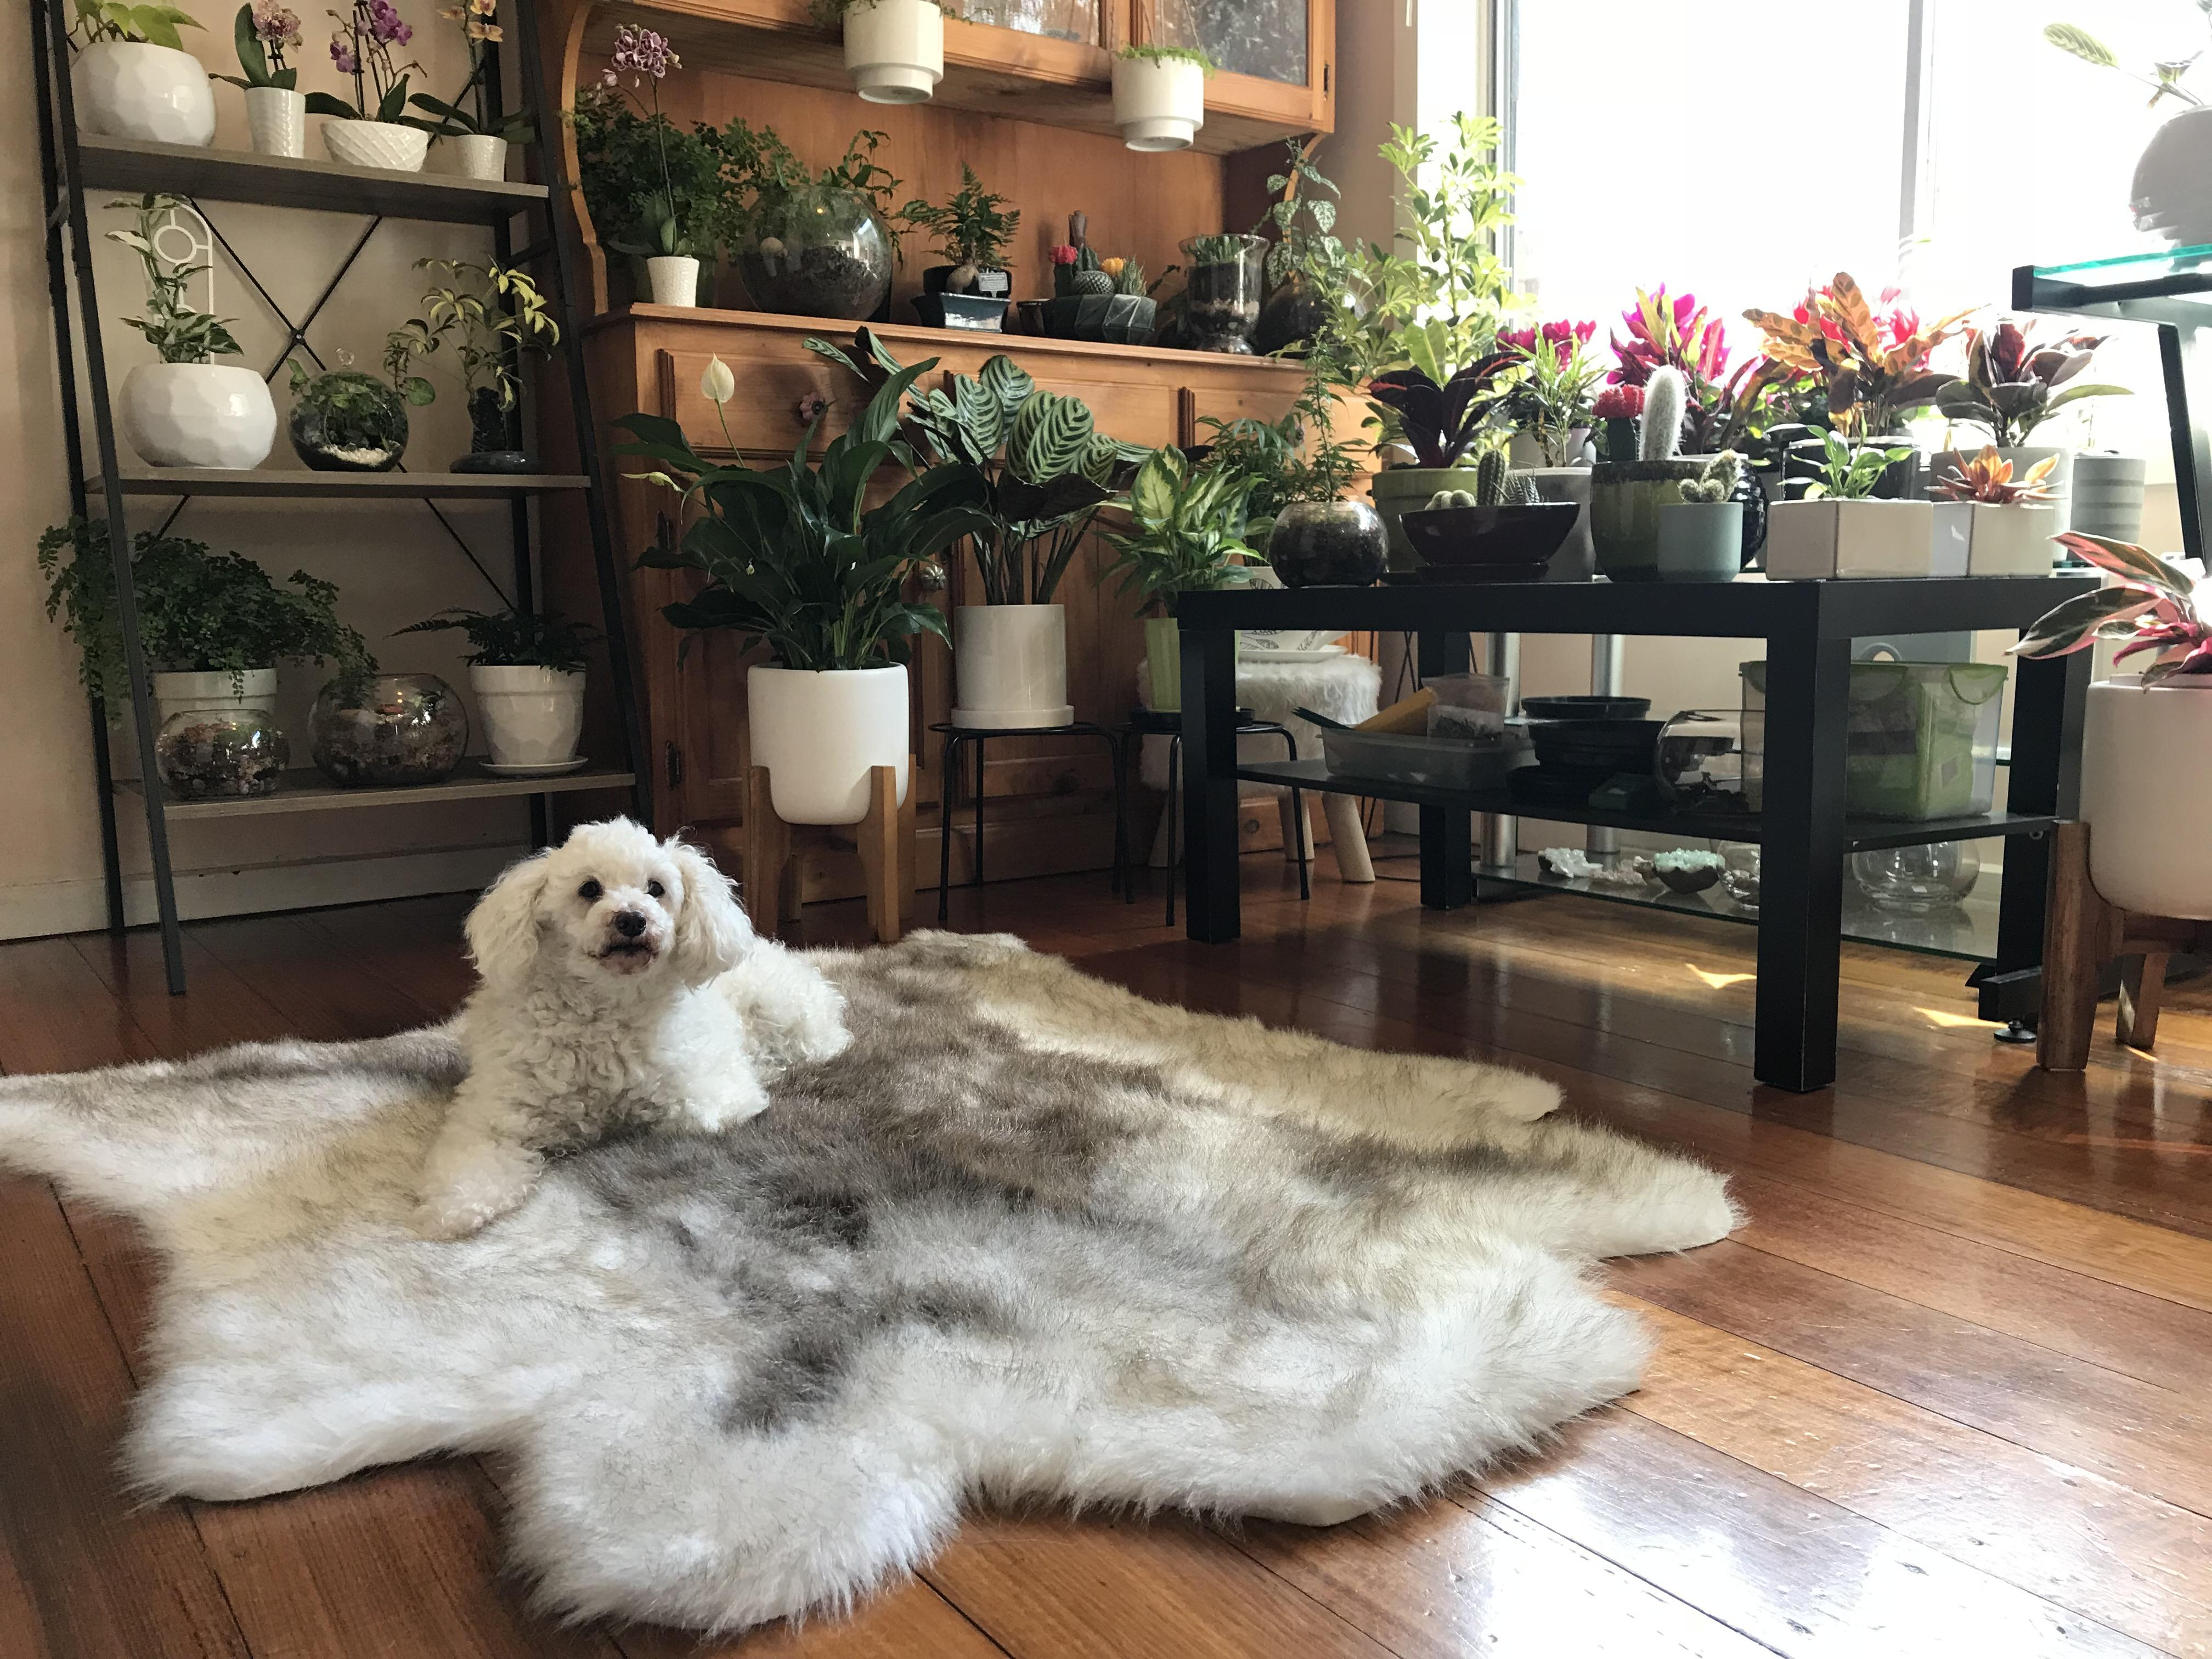 This dog really took control of this cozy space with a lot of plants